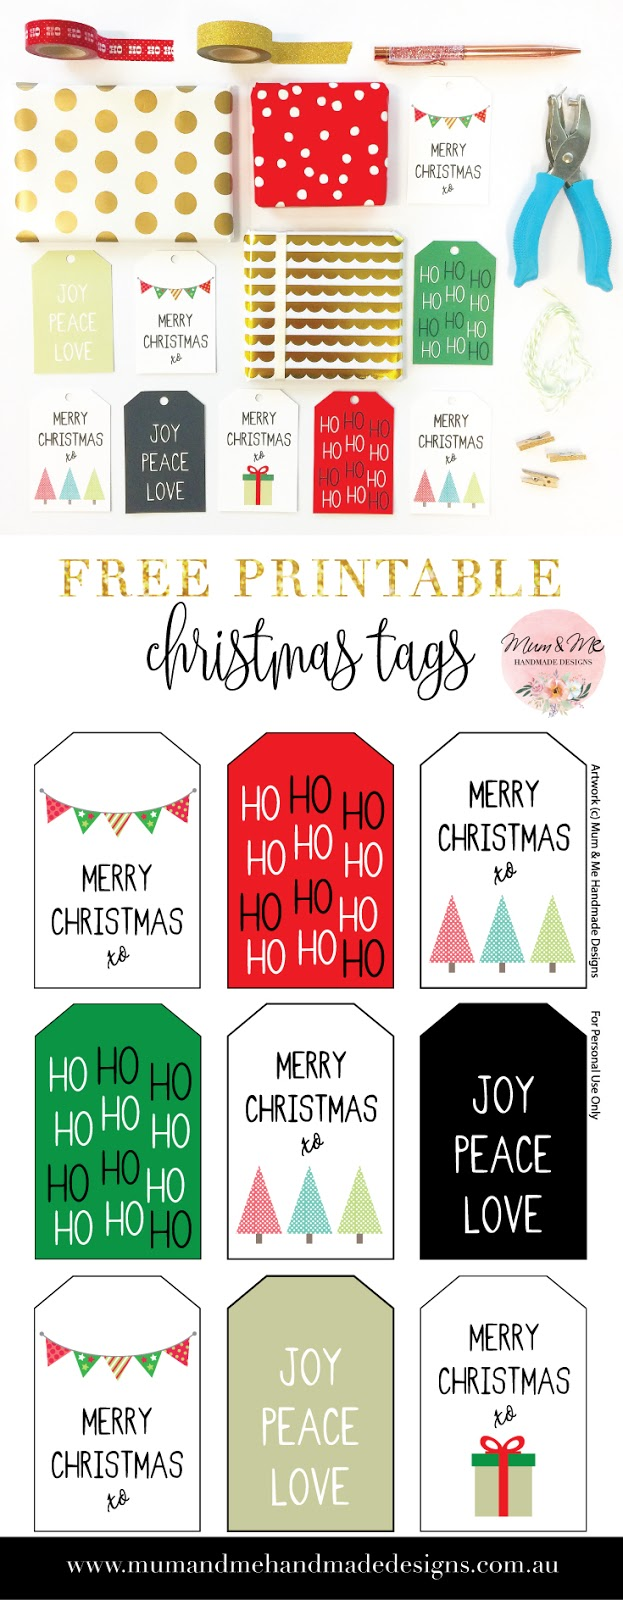 Generous merry christmas gift tags contemporary christmas ideas delighted personalized christmas gift tags free printables images negle Image collections